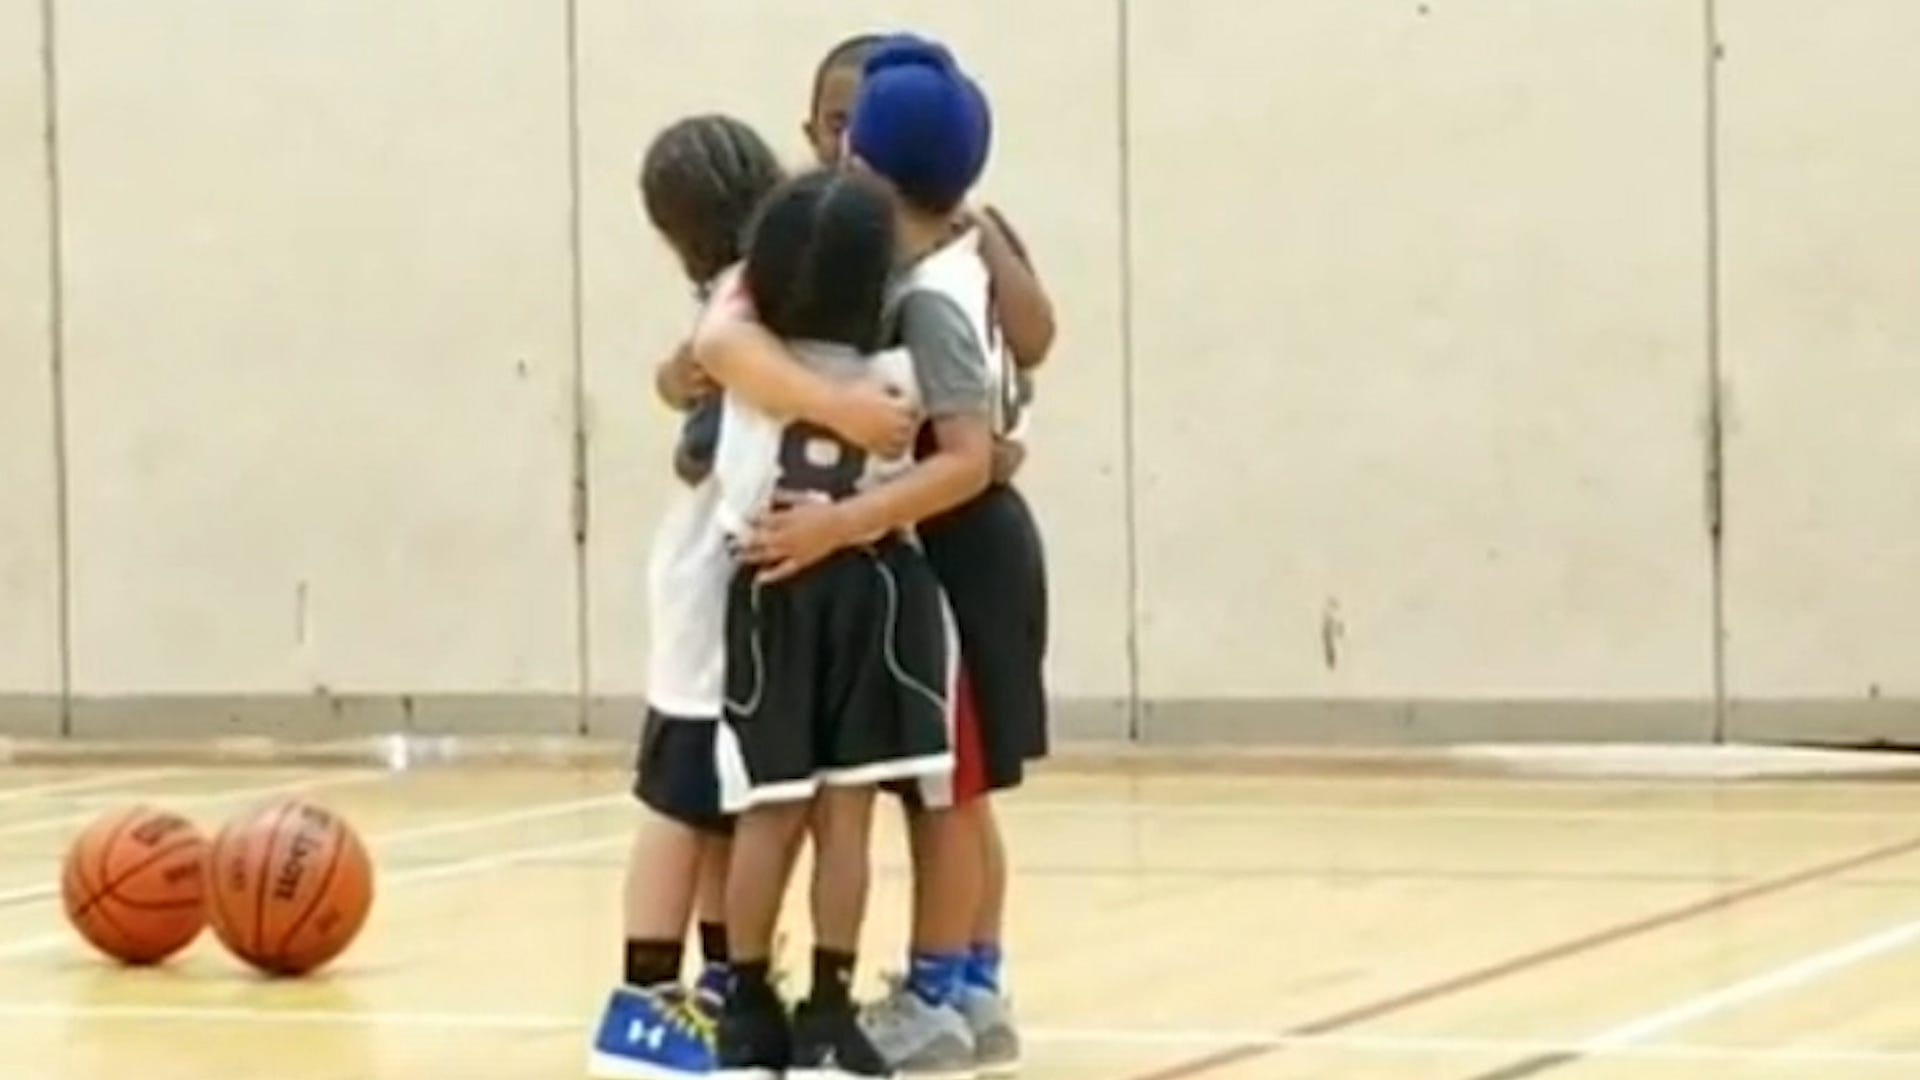 Kids' group hug during basketball game is a huge win